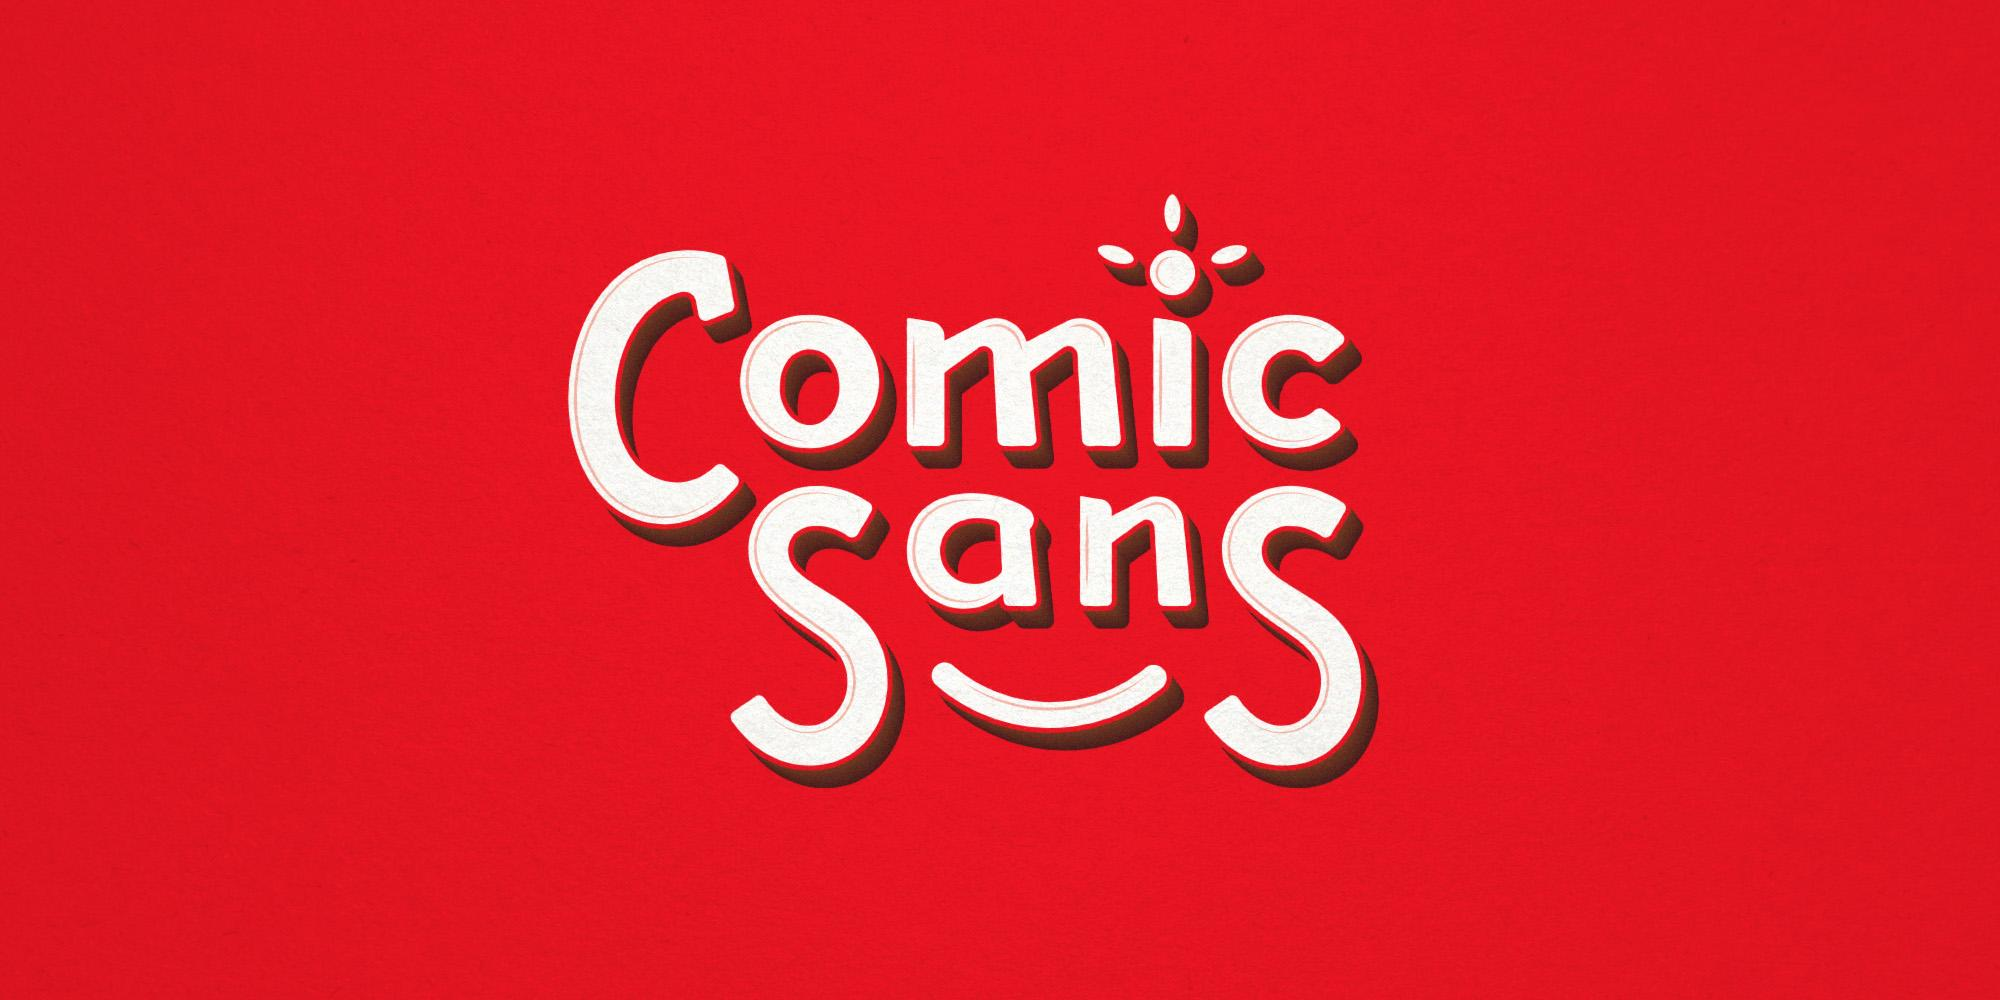 Comic Sans reborn: Wide view